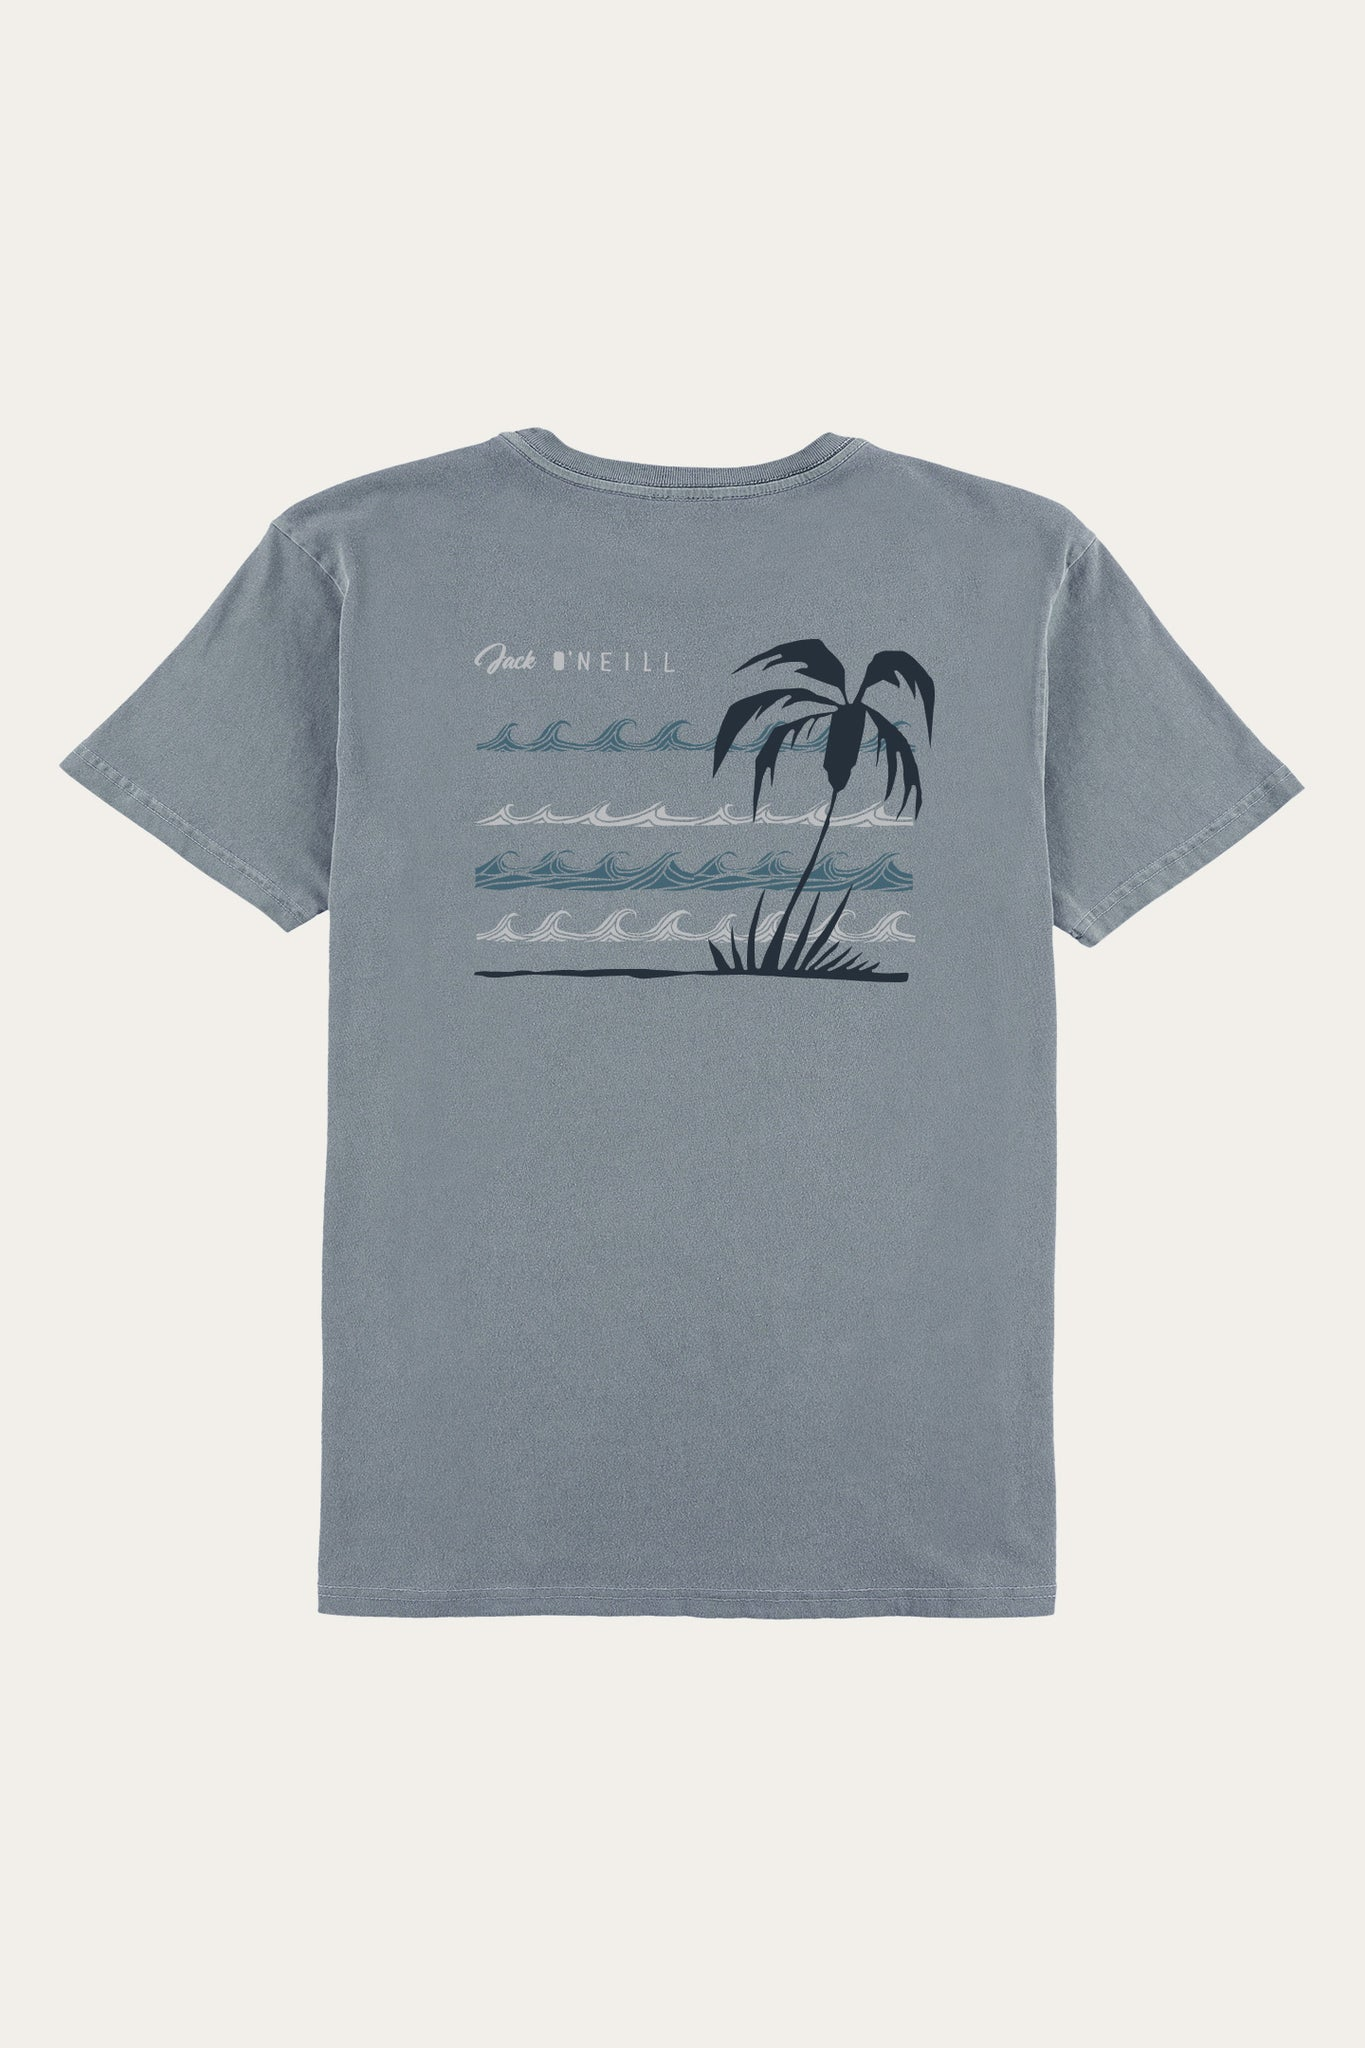 Jack O'Neill Views Tee - Smoke Blue | O'Neill